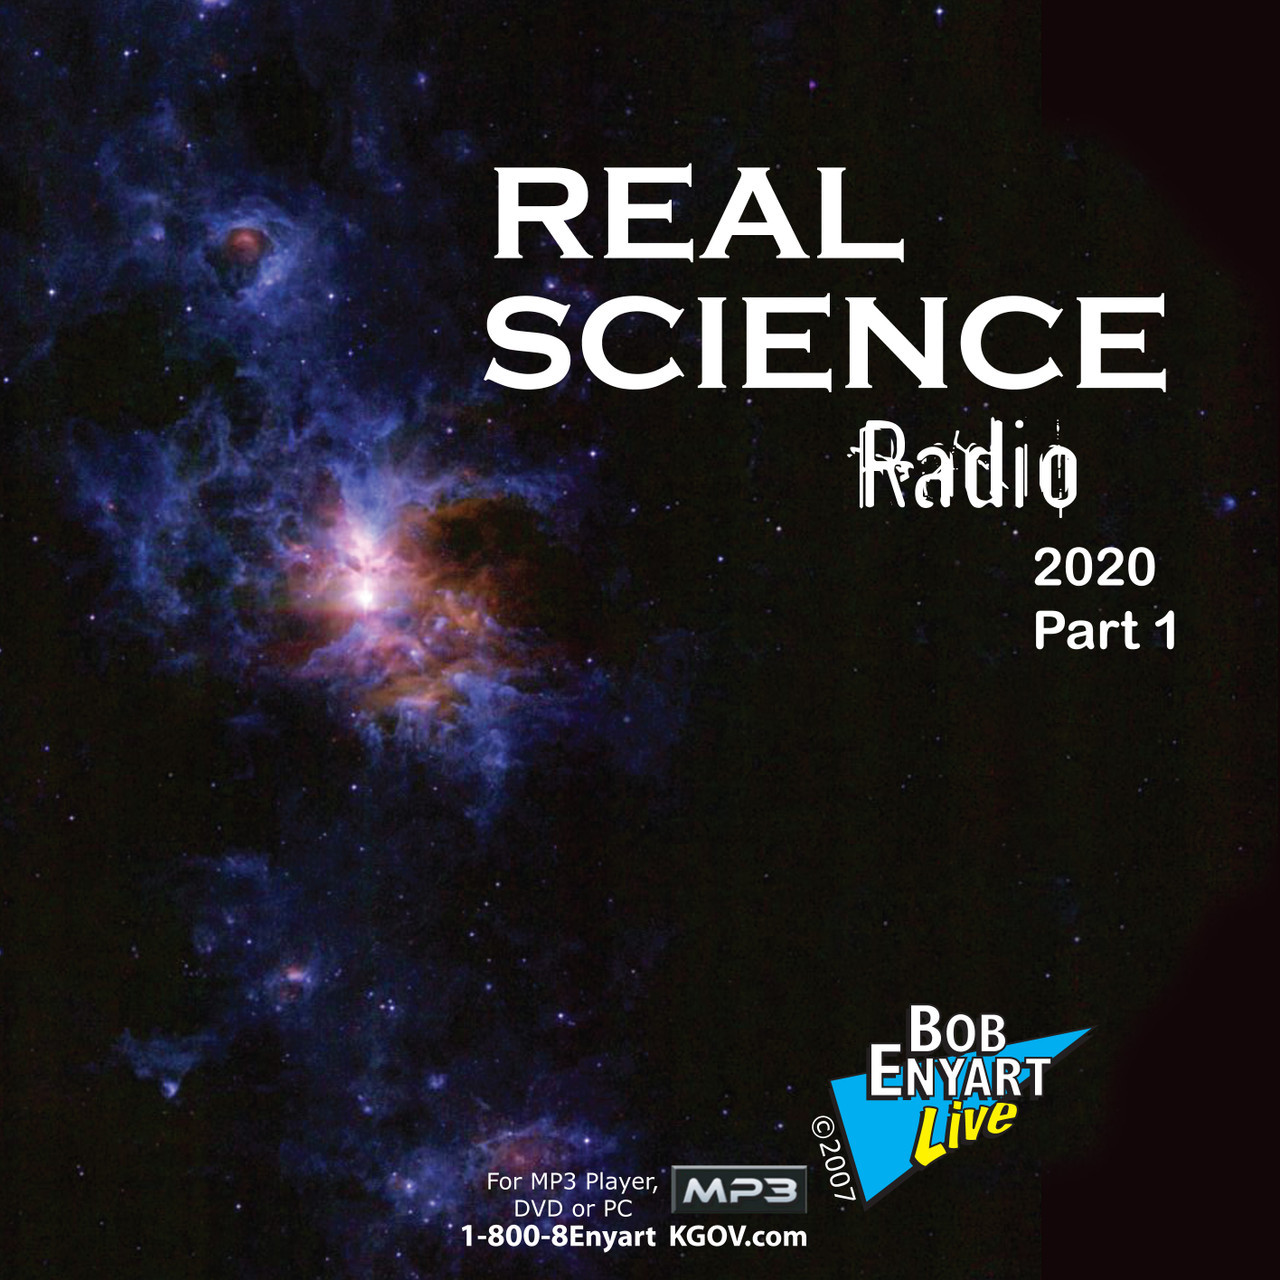 Real Science Radio all 2020 shows on 2 MP3 CDs